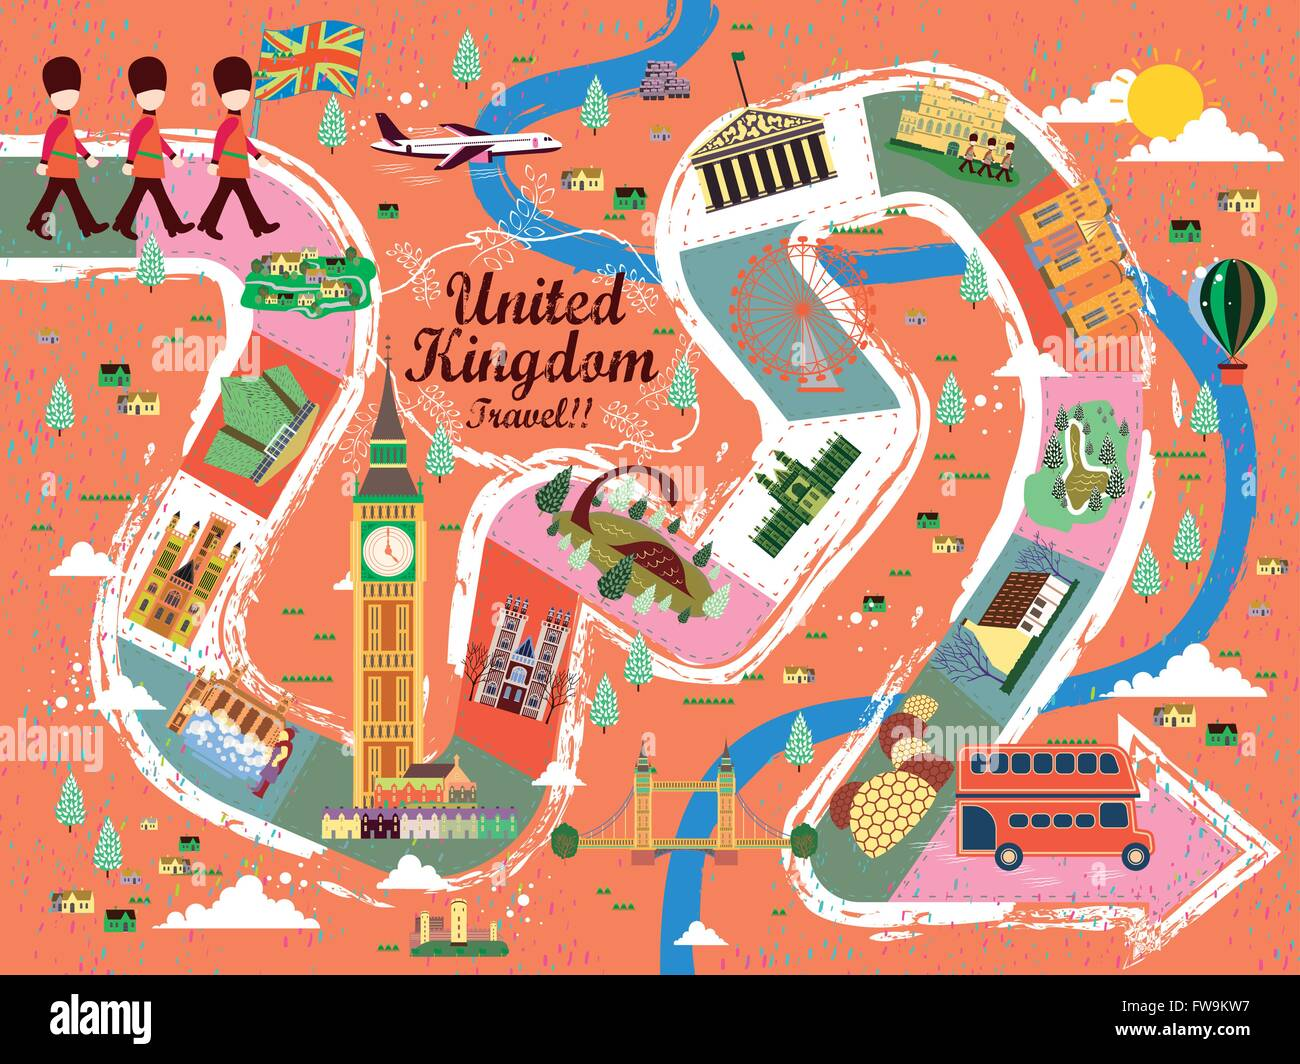 energetic united kingdom travel board game poster design